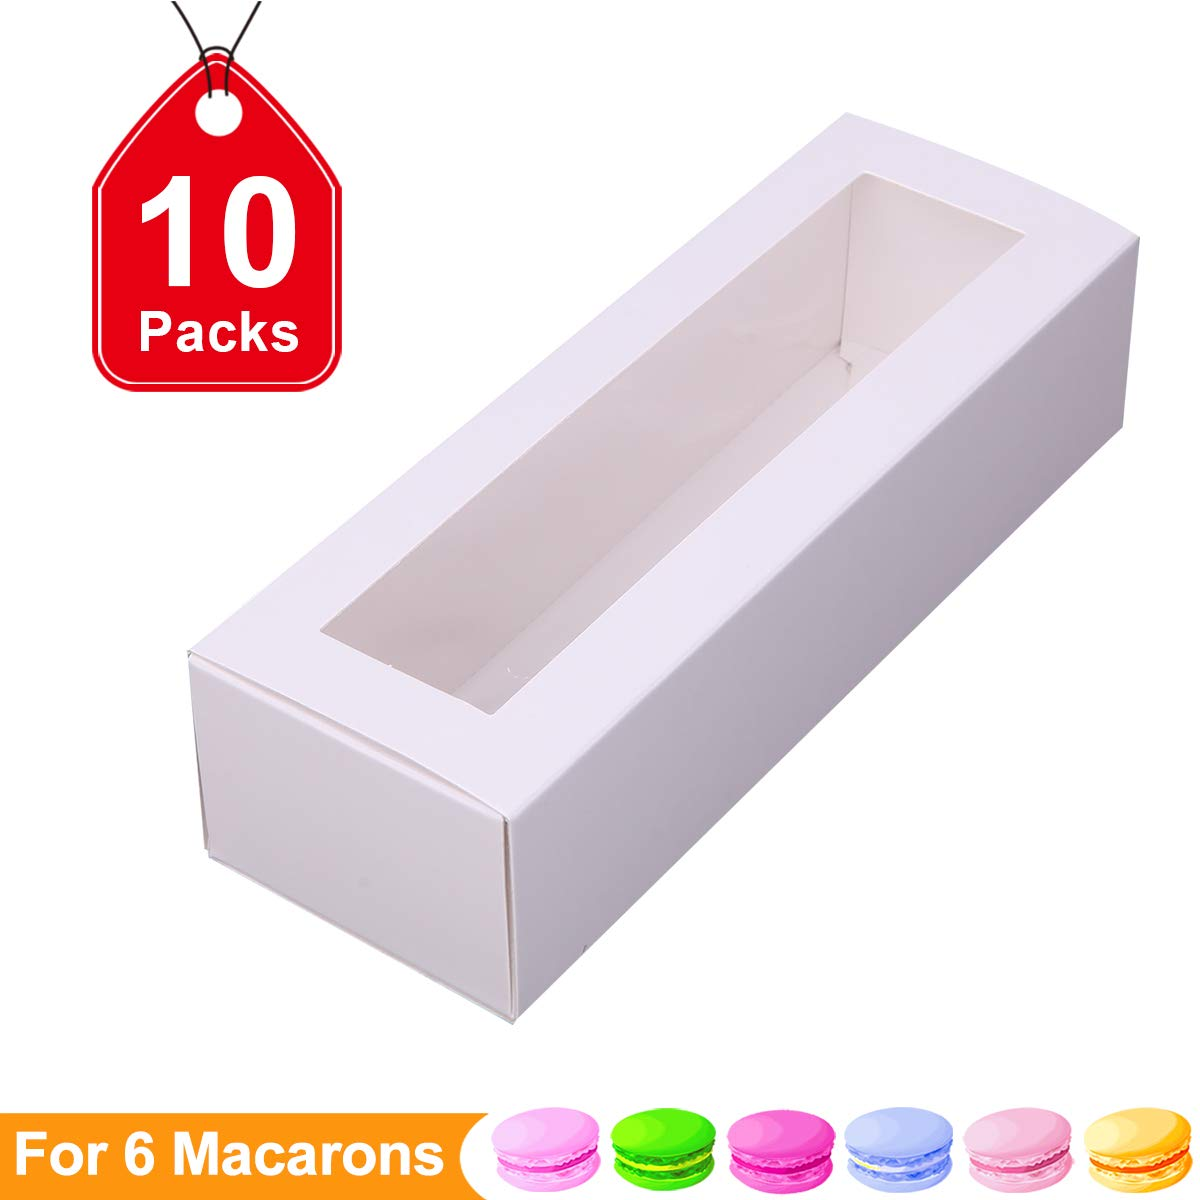 Macaron Boxes Macarons Boxes Macarons Box for 6 Macaron Container Macaroon Packaging Boxes with Clear Window (White, 10 units pack)7.3 inch × 2 inch×2 inch by PACKHOME